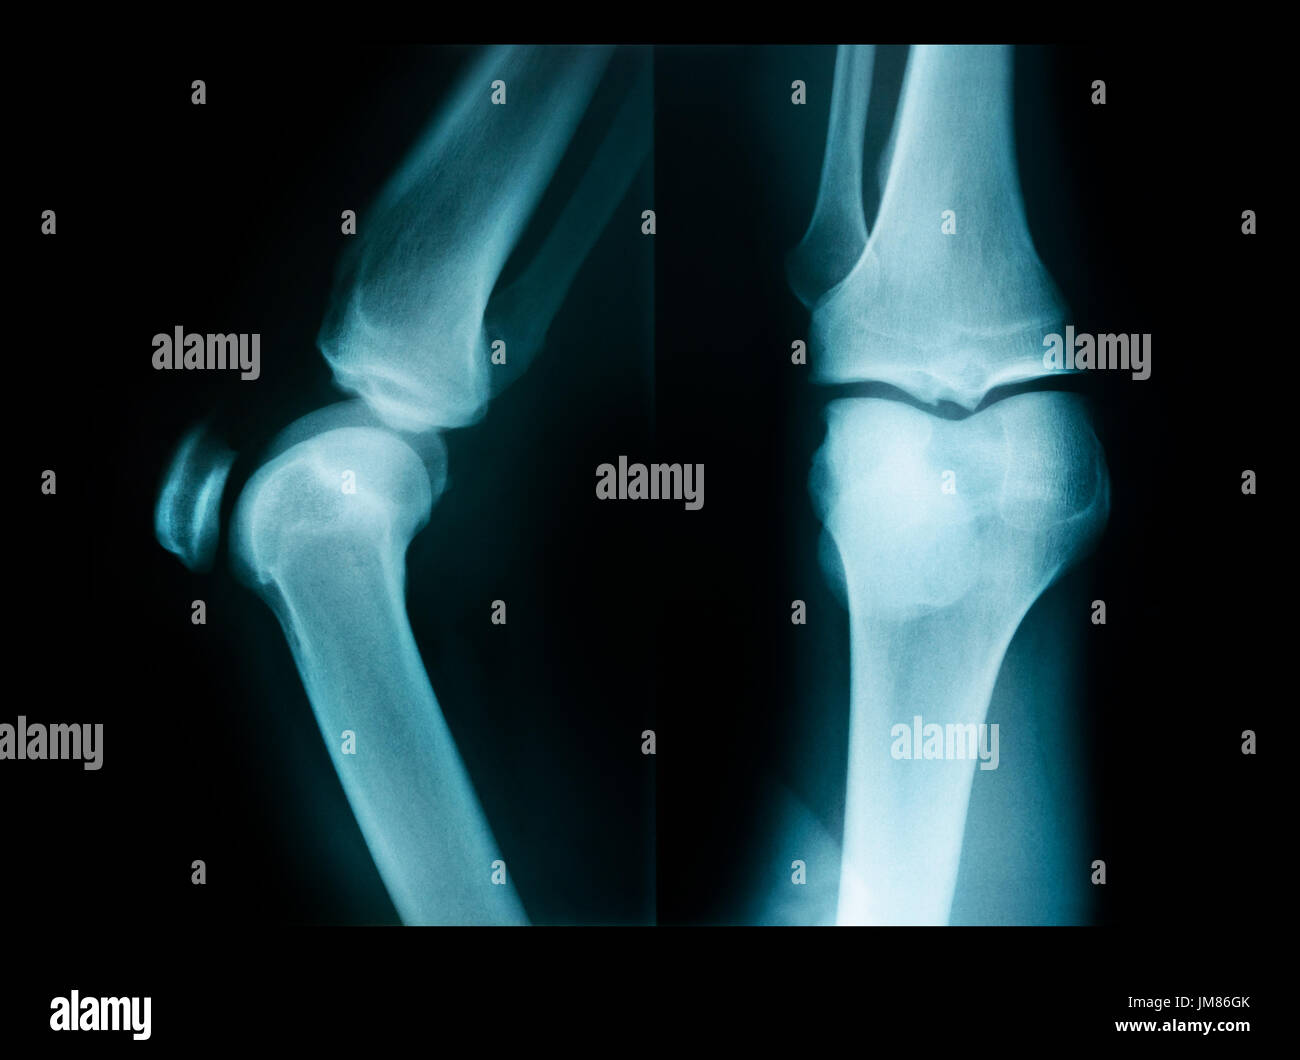 X Ray Picture Showing Knee Joints Knee Bones Joint Stock Photo